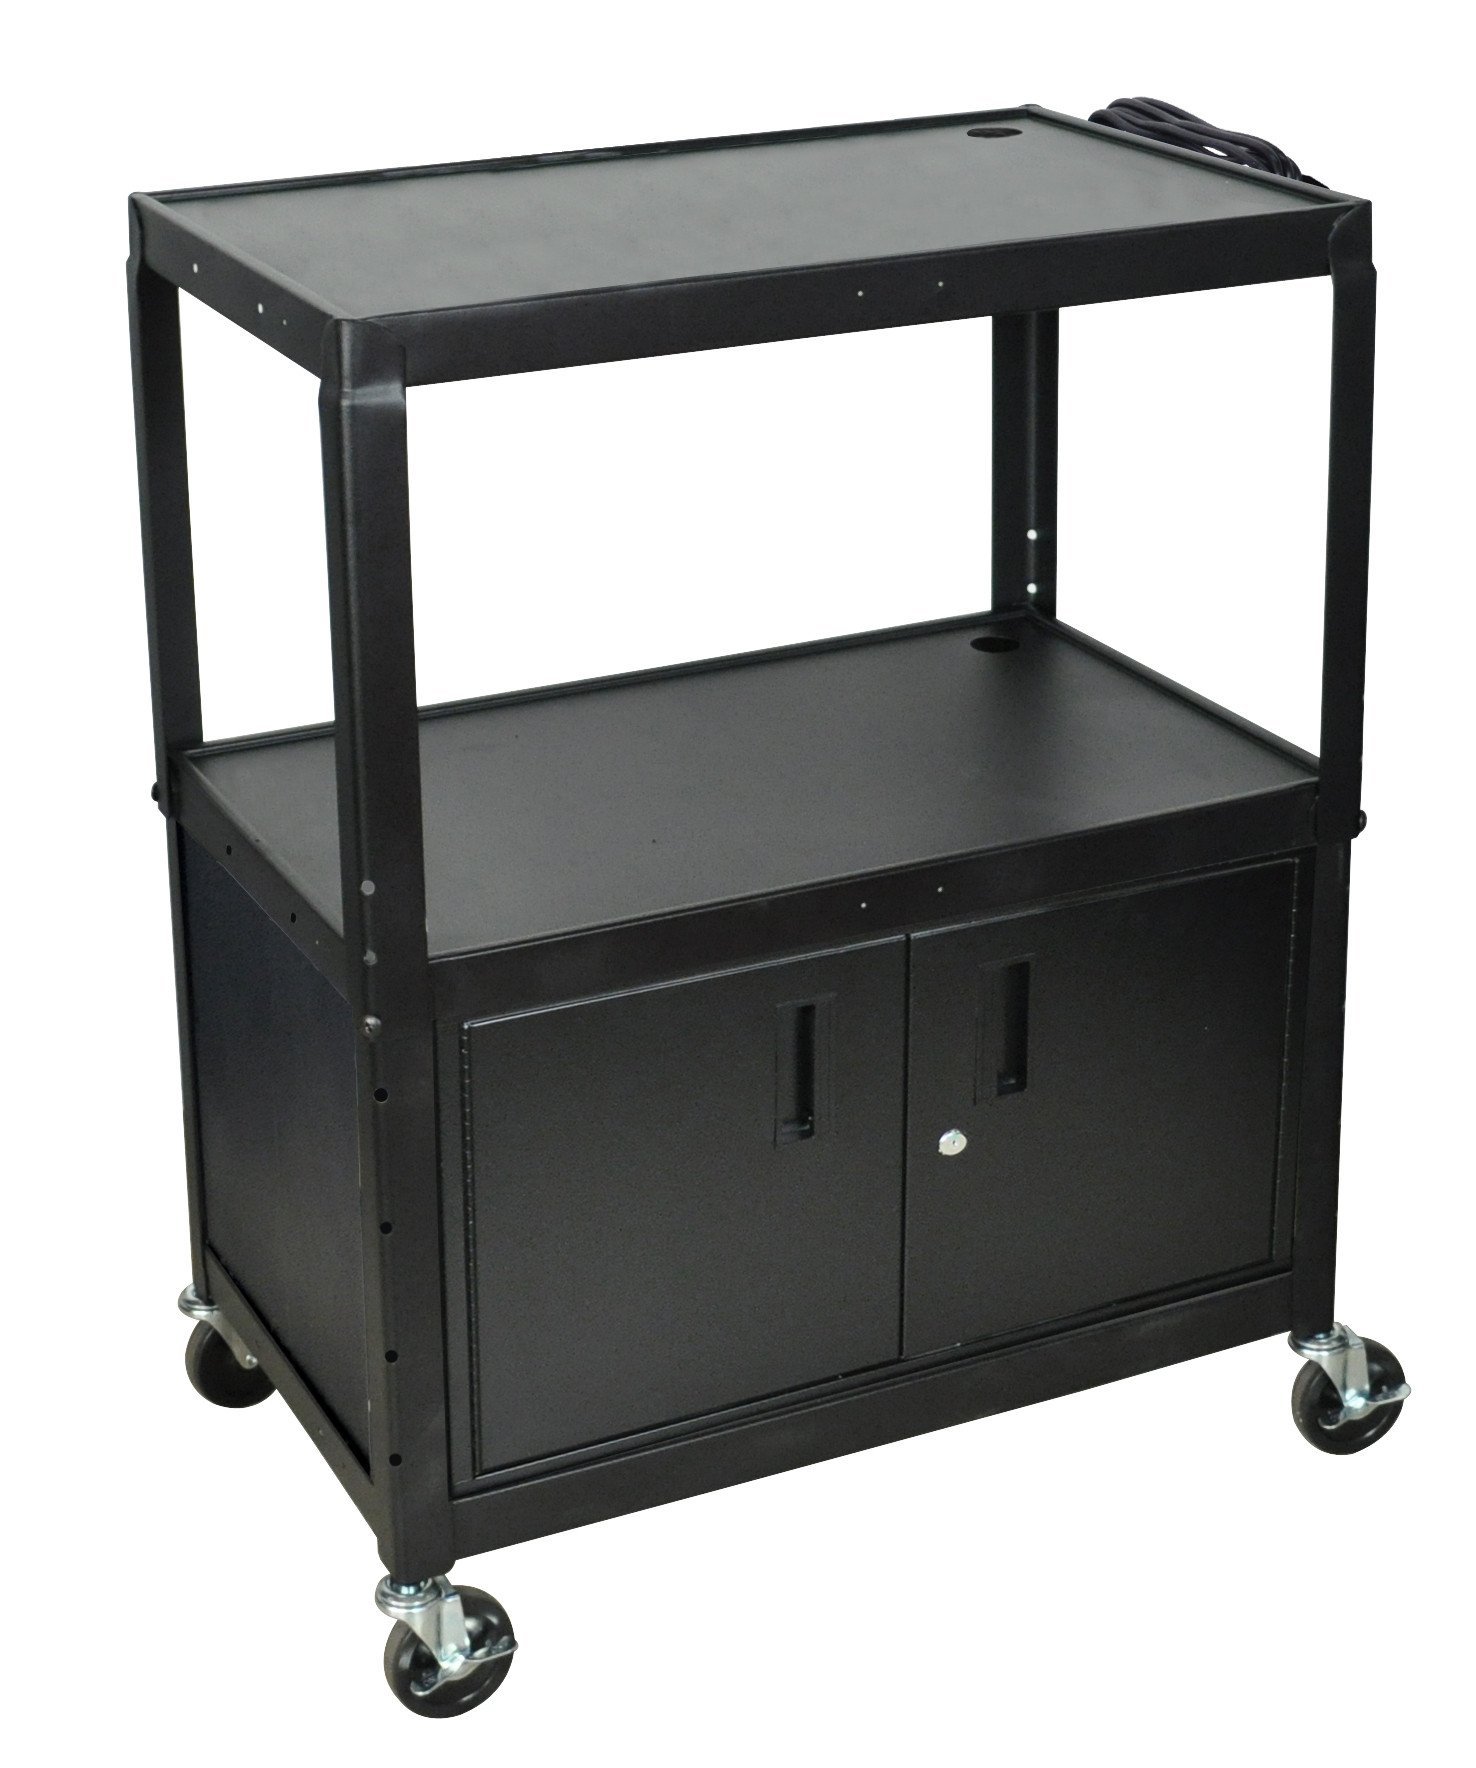 Luxor AVJ42XLC - Steel Adj Height Extra Large AV Cart w/ Cabinet